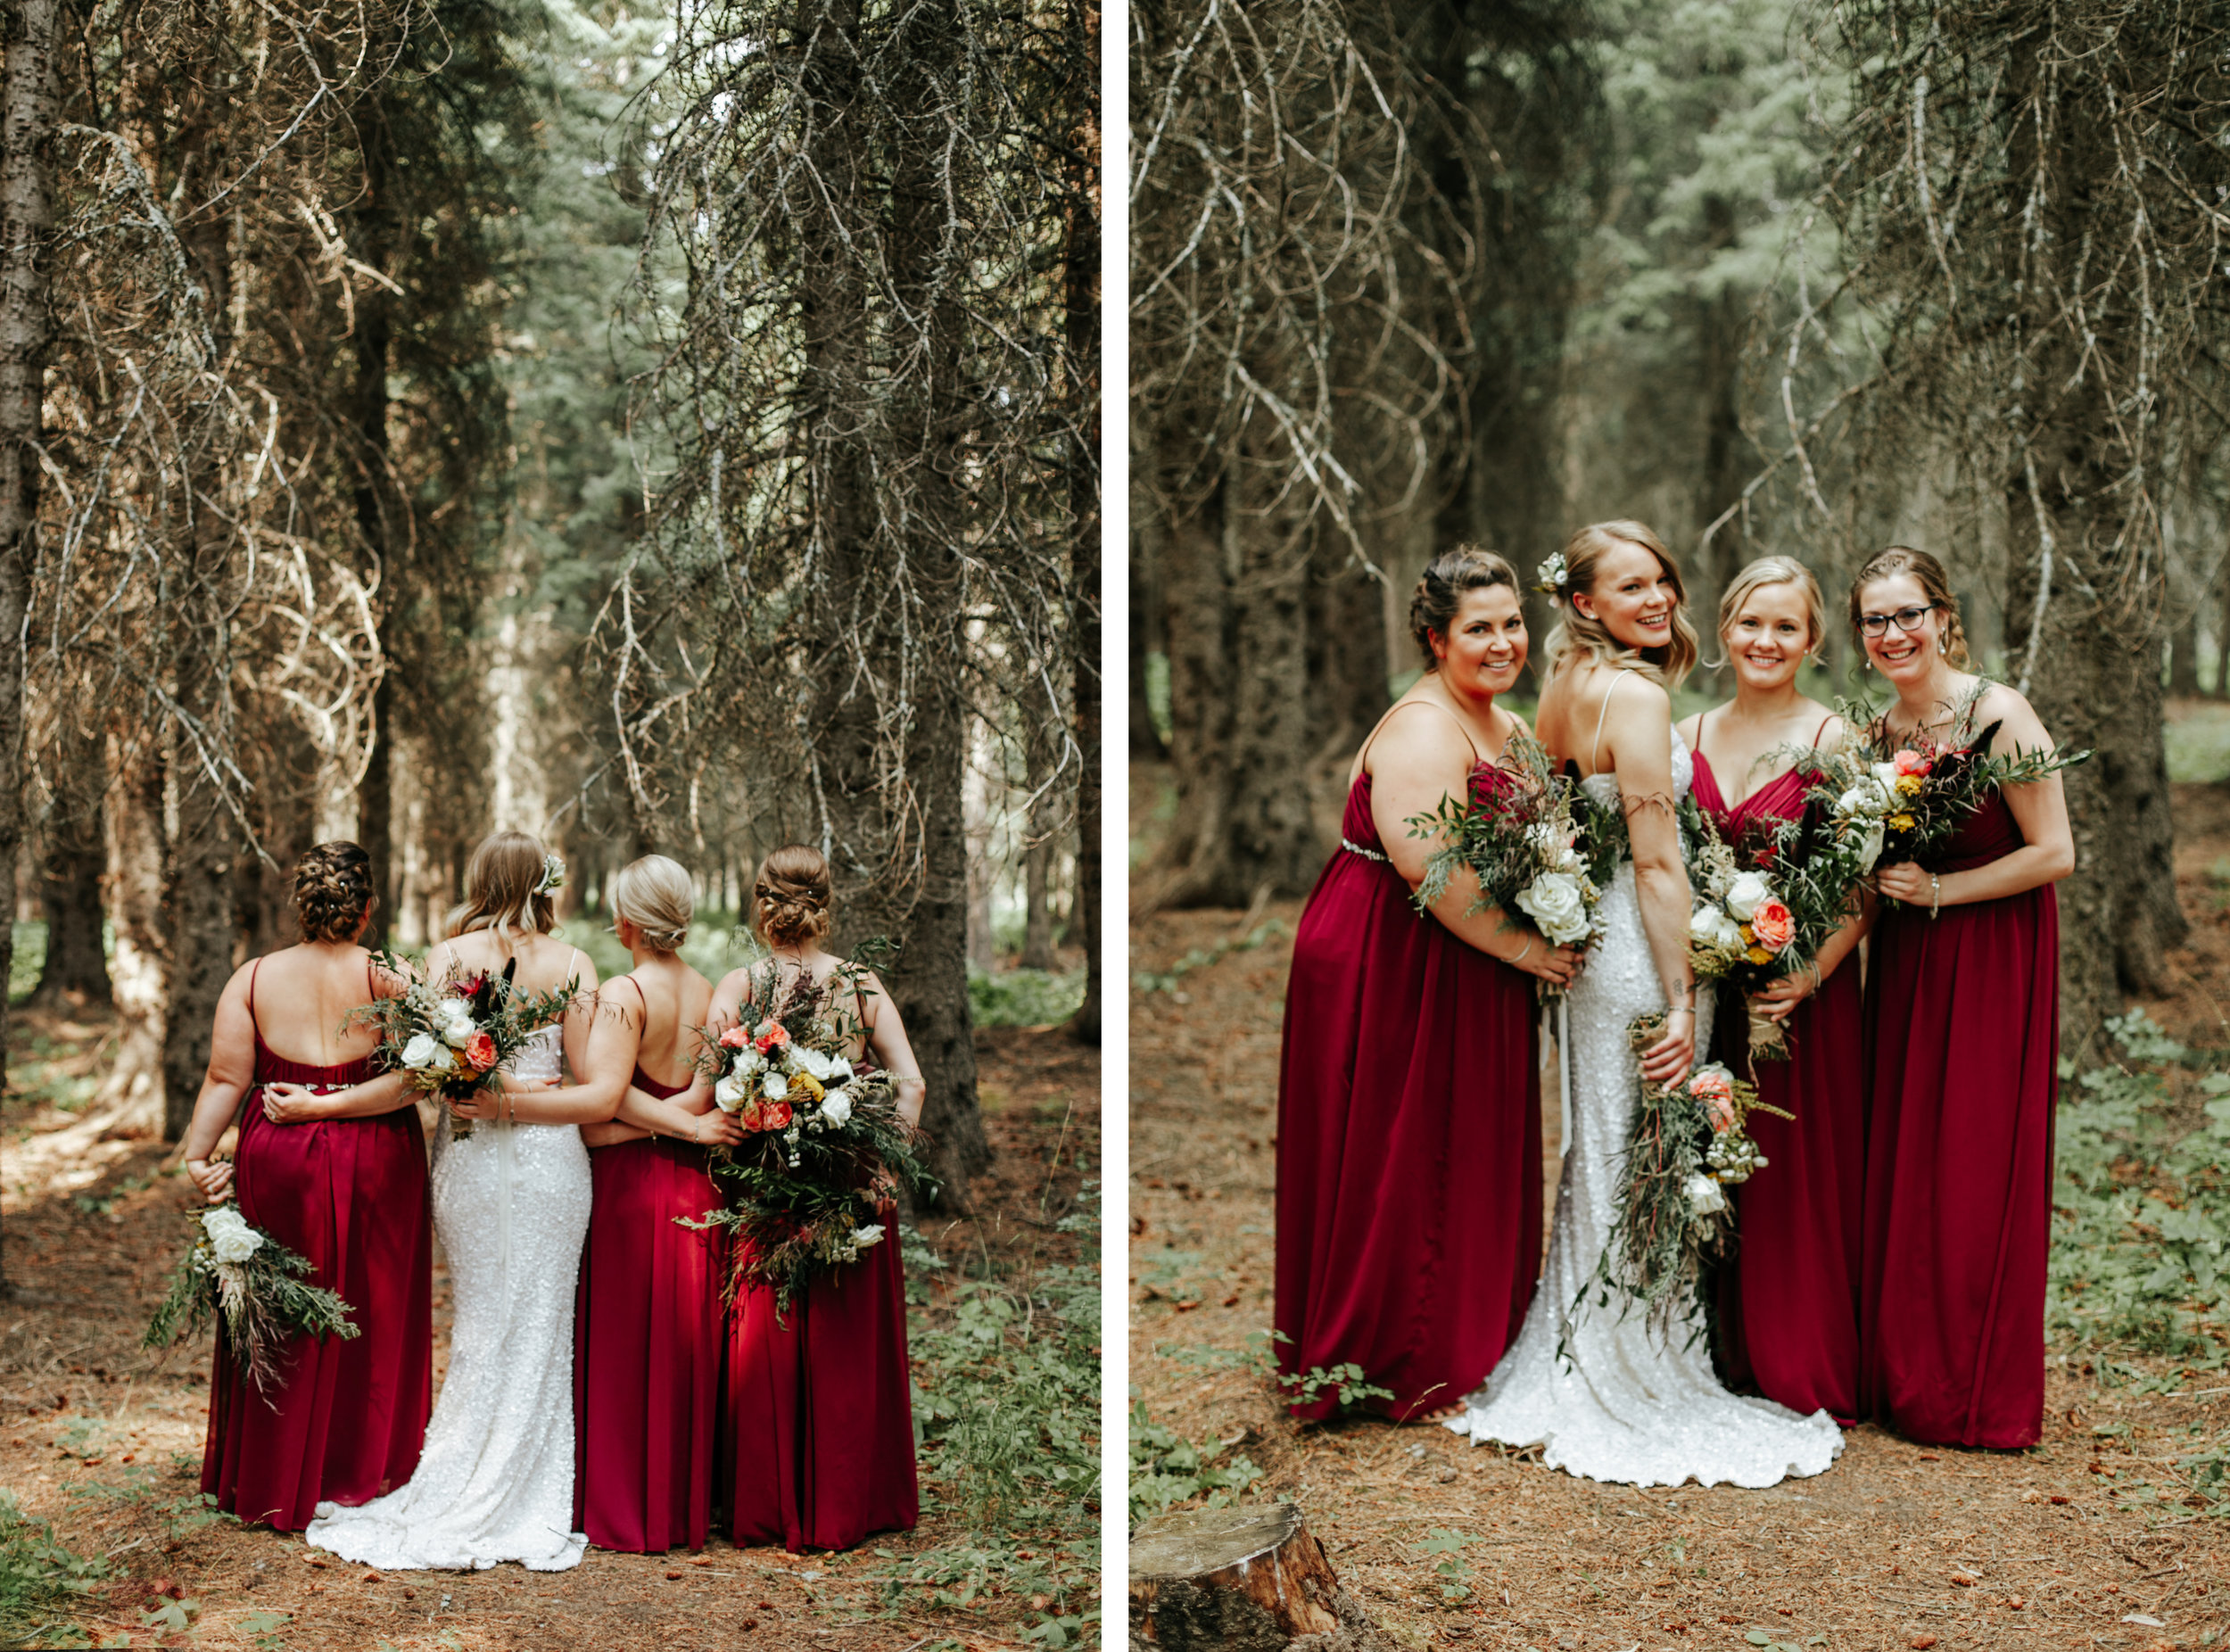 castle-mountain-wedding-photographer-love-and-be-loved-photography-lethbridge-pincher-creek-crowsnest-pass-yannick-rylee-photo-image-picture-105.jpg